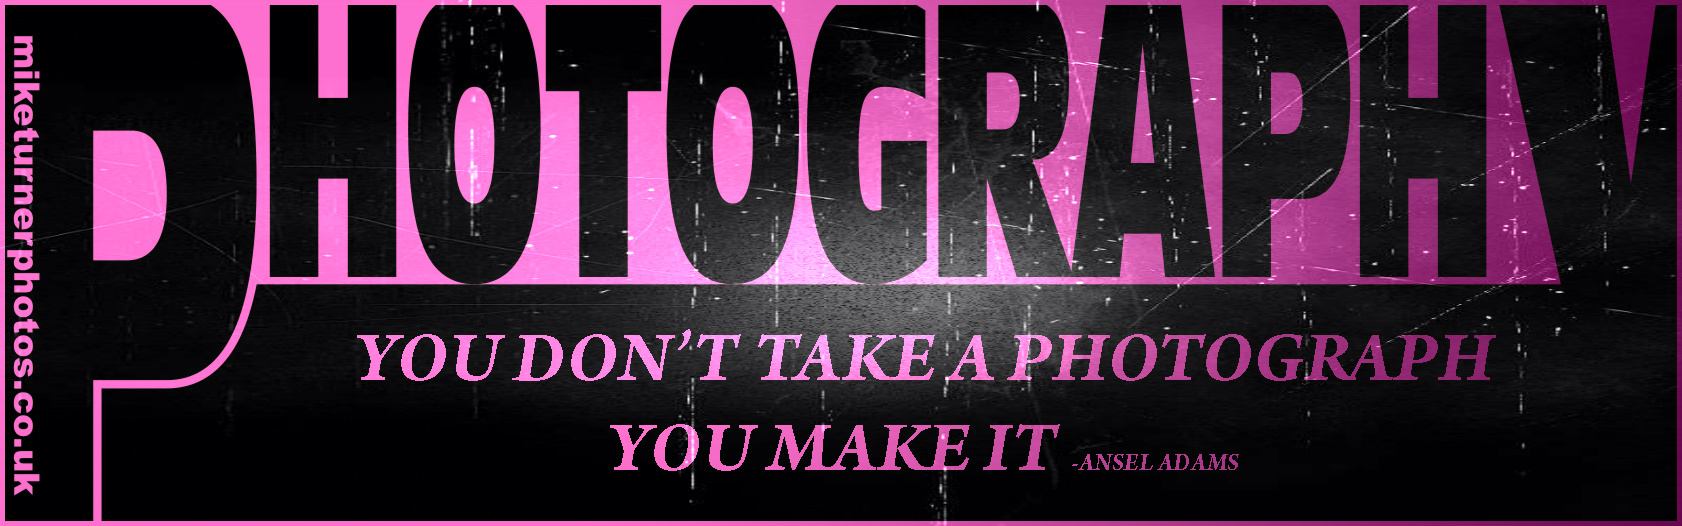 Mike Turner Photography quote graphic